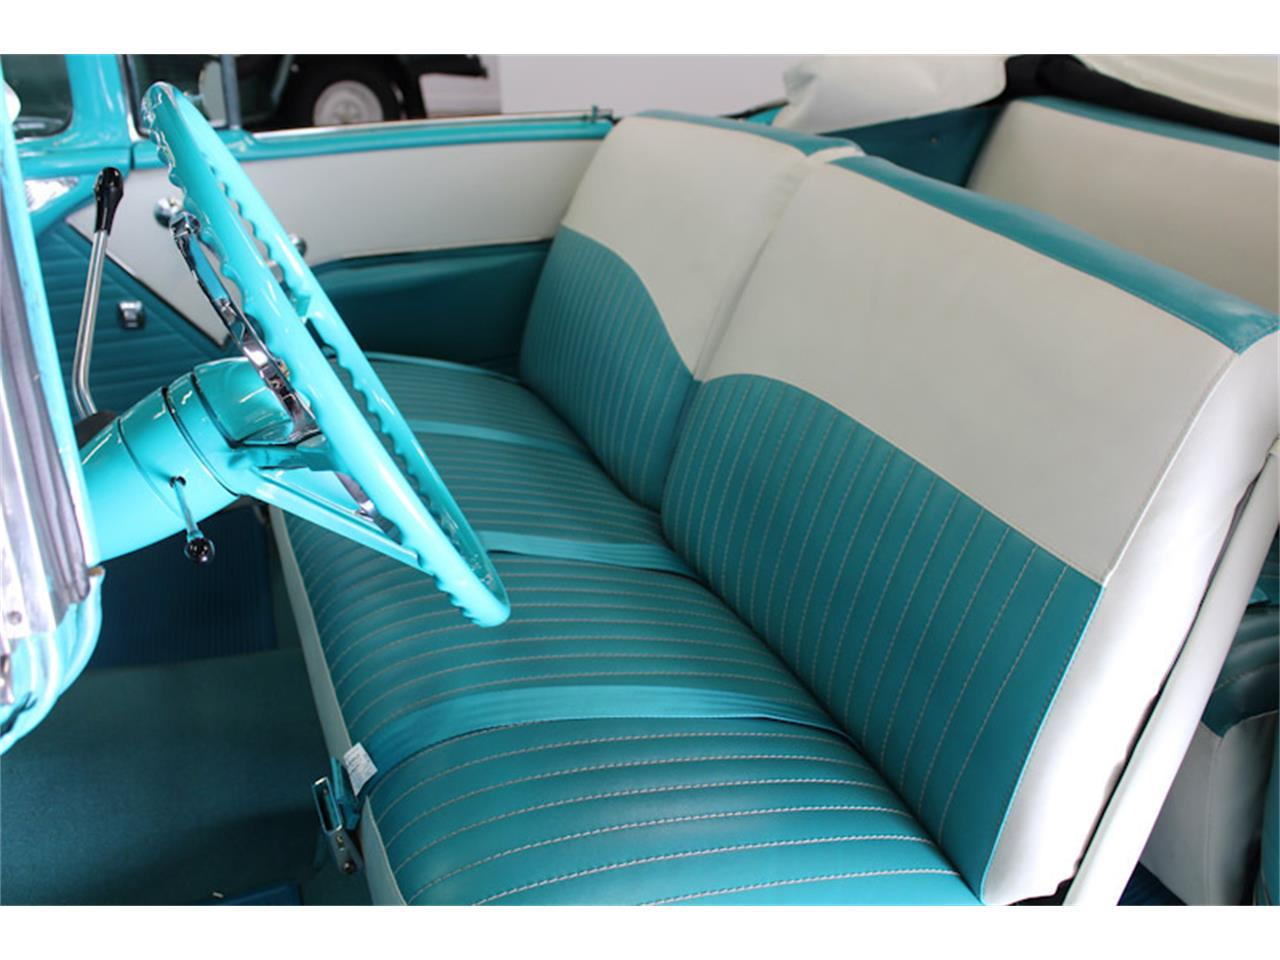 1955 Chevrolet Bel Air for sale in Fairfield, CA – photo 46